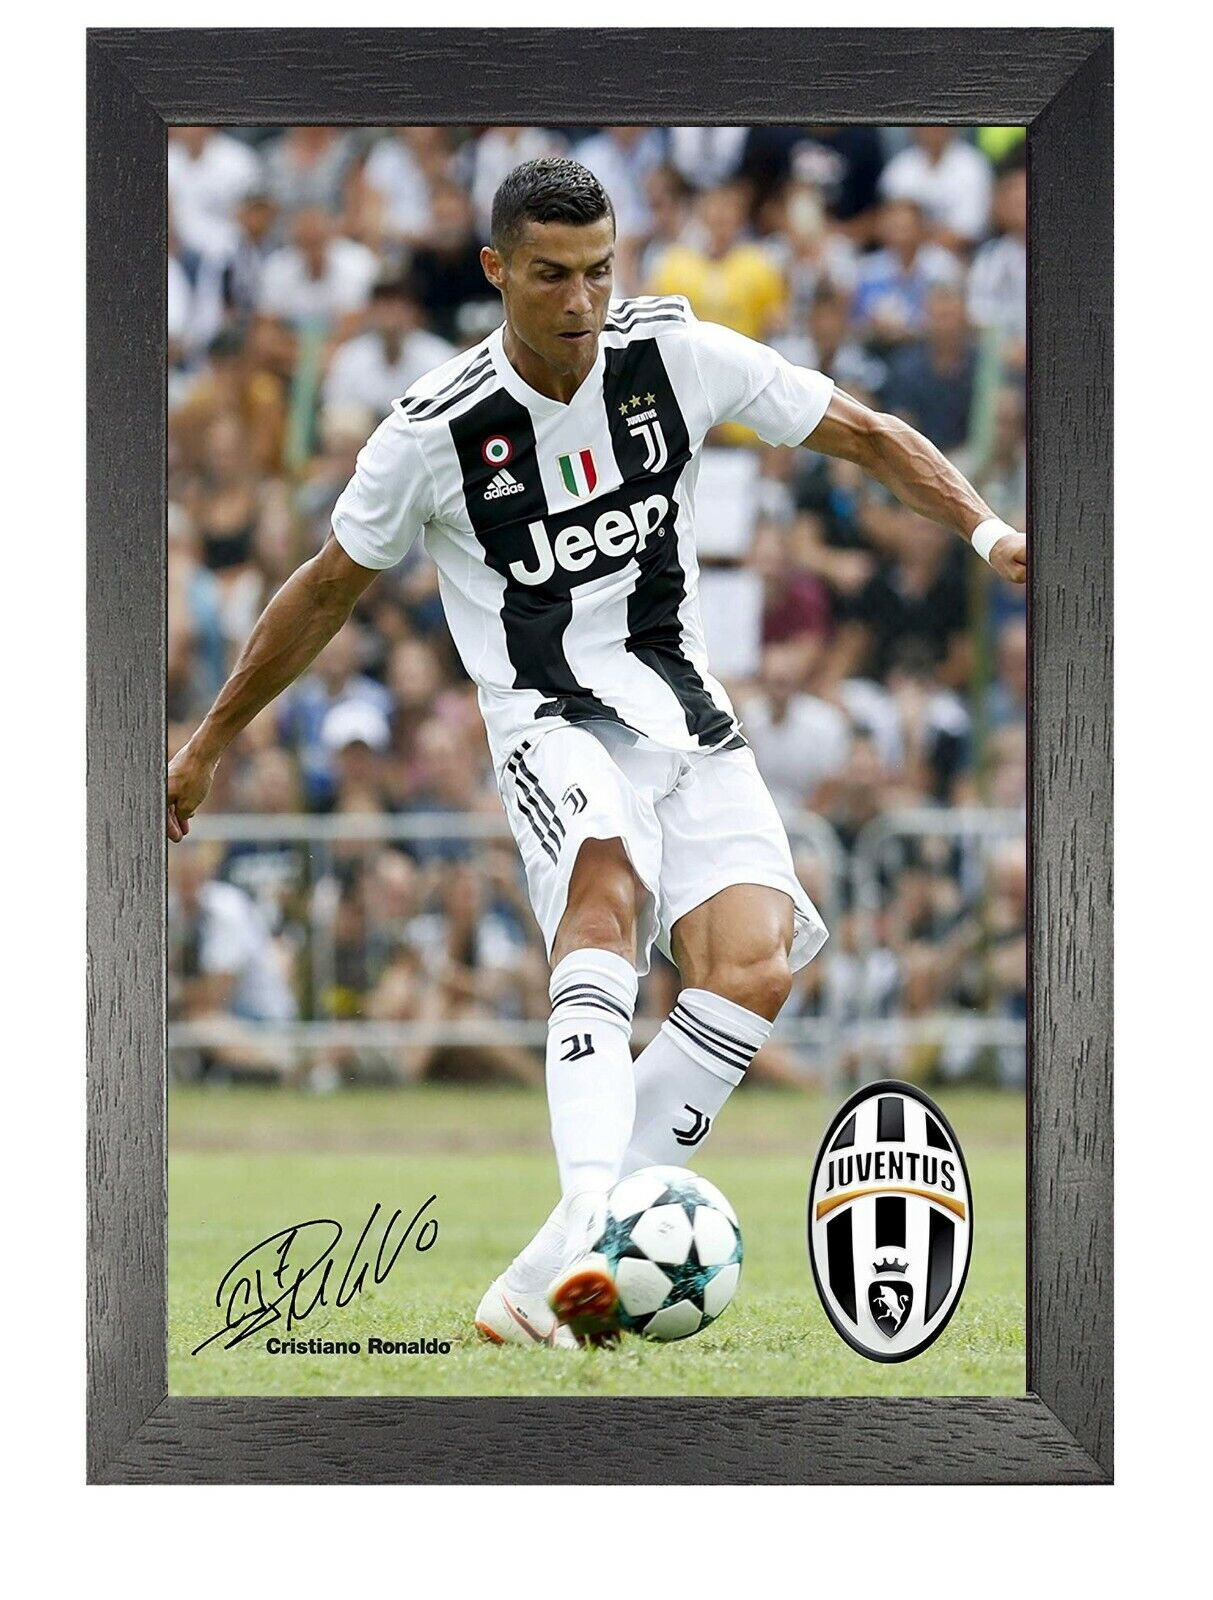 10 Ronaldo Juventus Football Player Poster Sport Photo Motivation Signed Picture